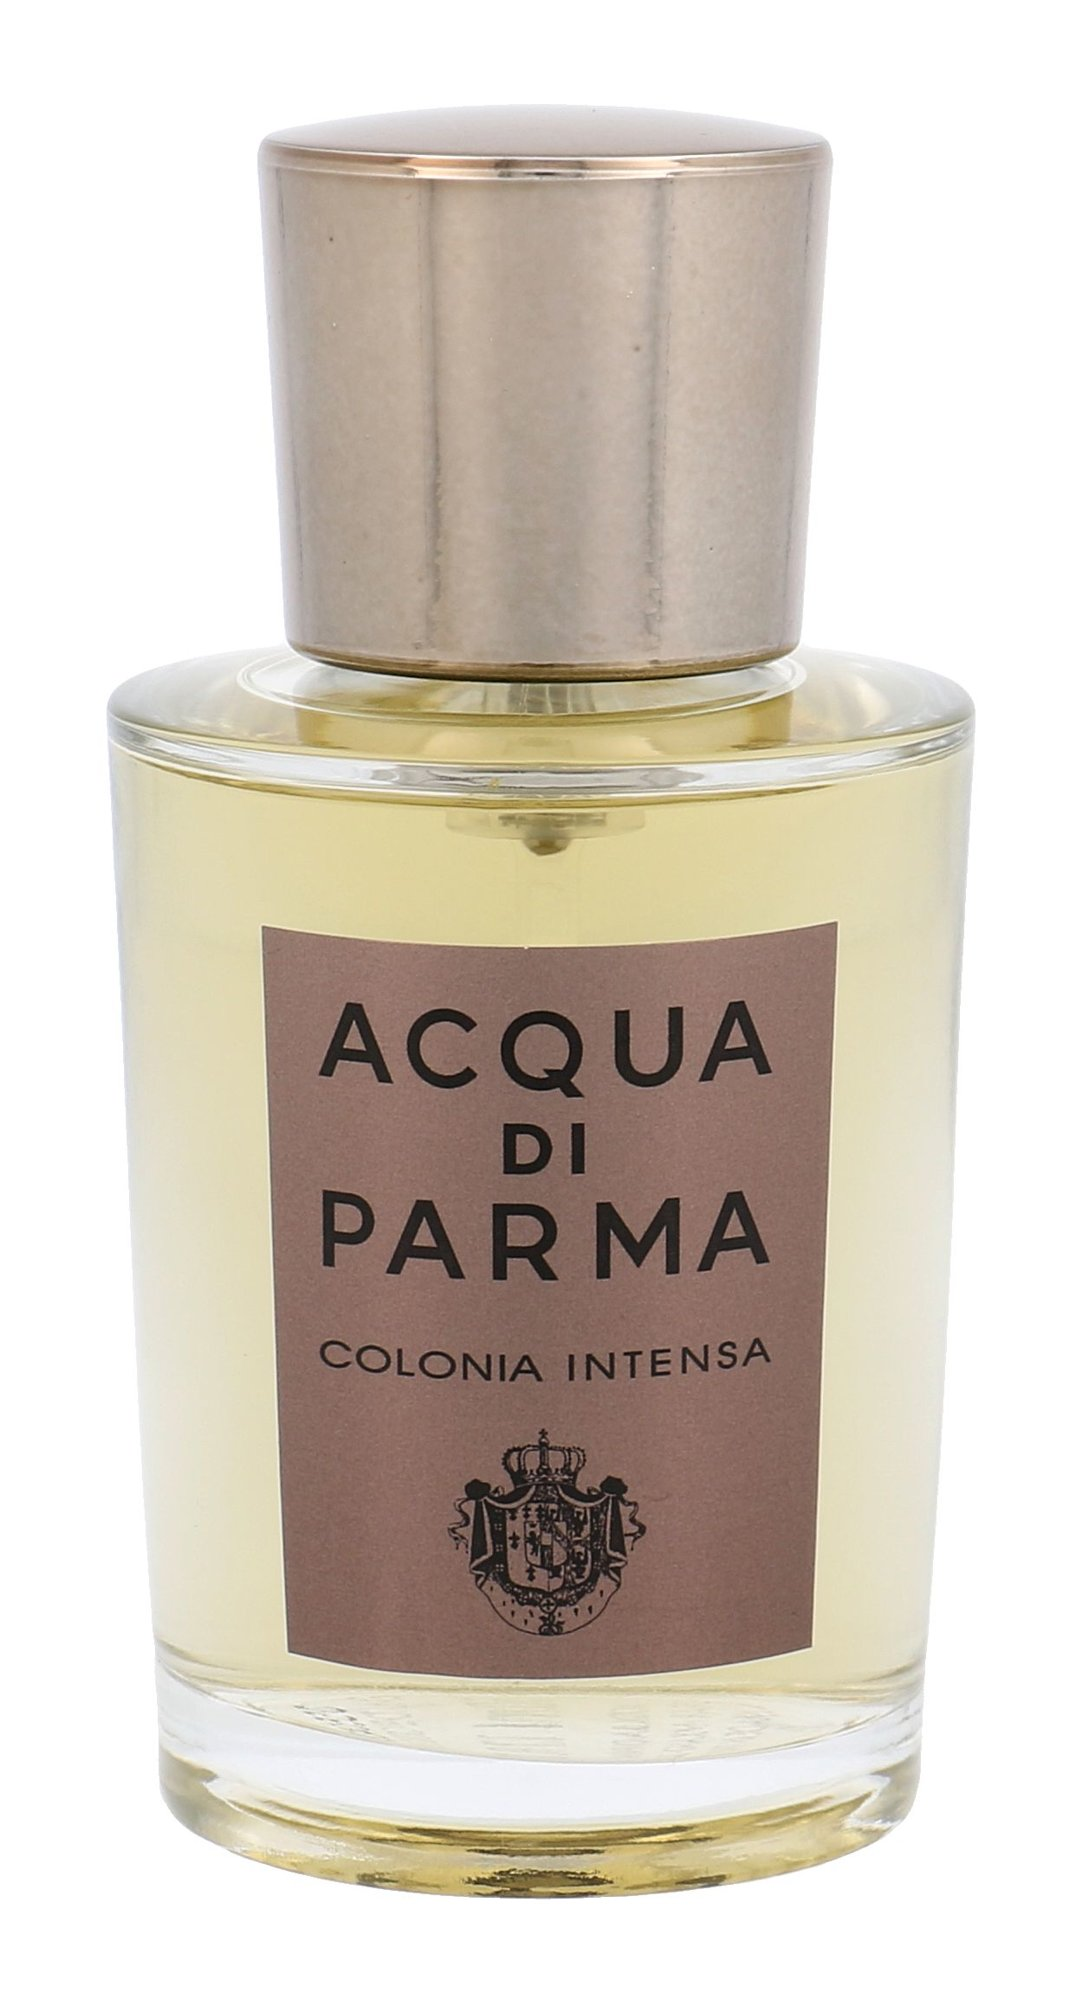 Acqua di Parma Colonia Intensa Cologne 50ml